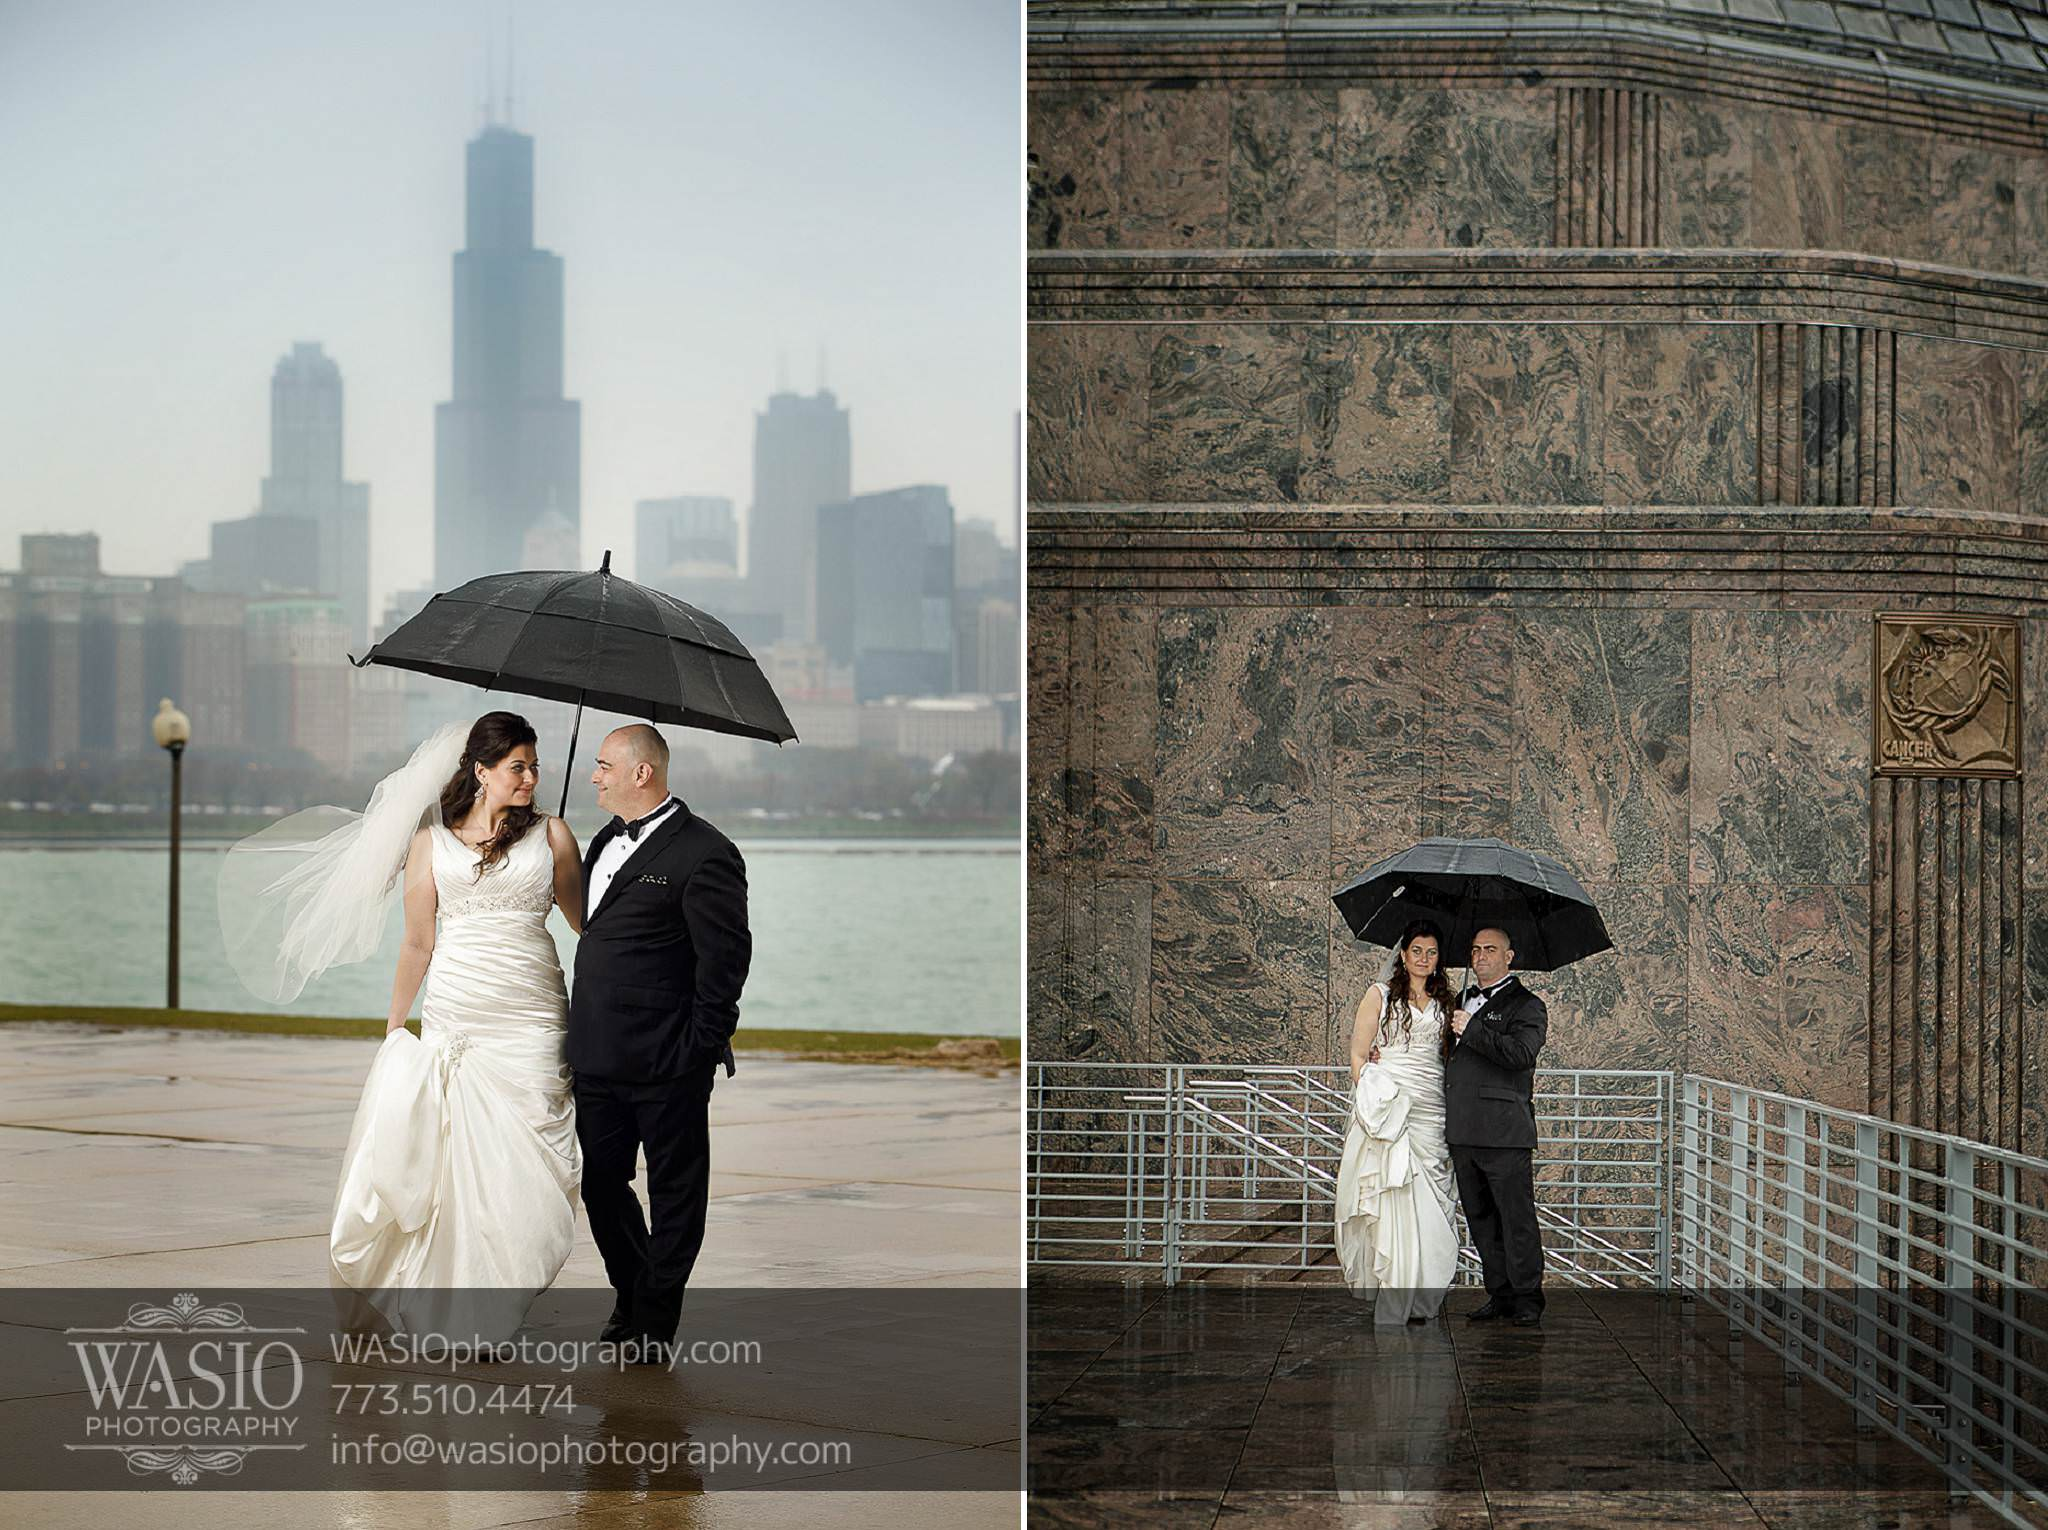 Chicago-wedding-photos-planetarium-skyline-downtown-rain-passion-romance-spring-031 Chicago Wedding Photos - Svetlana + Yuriy